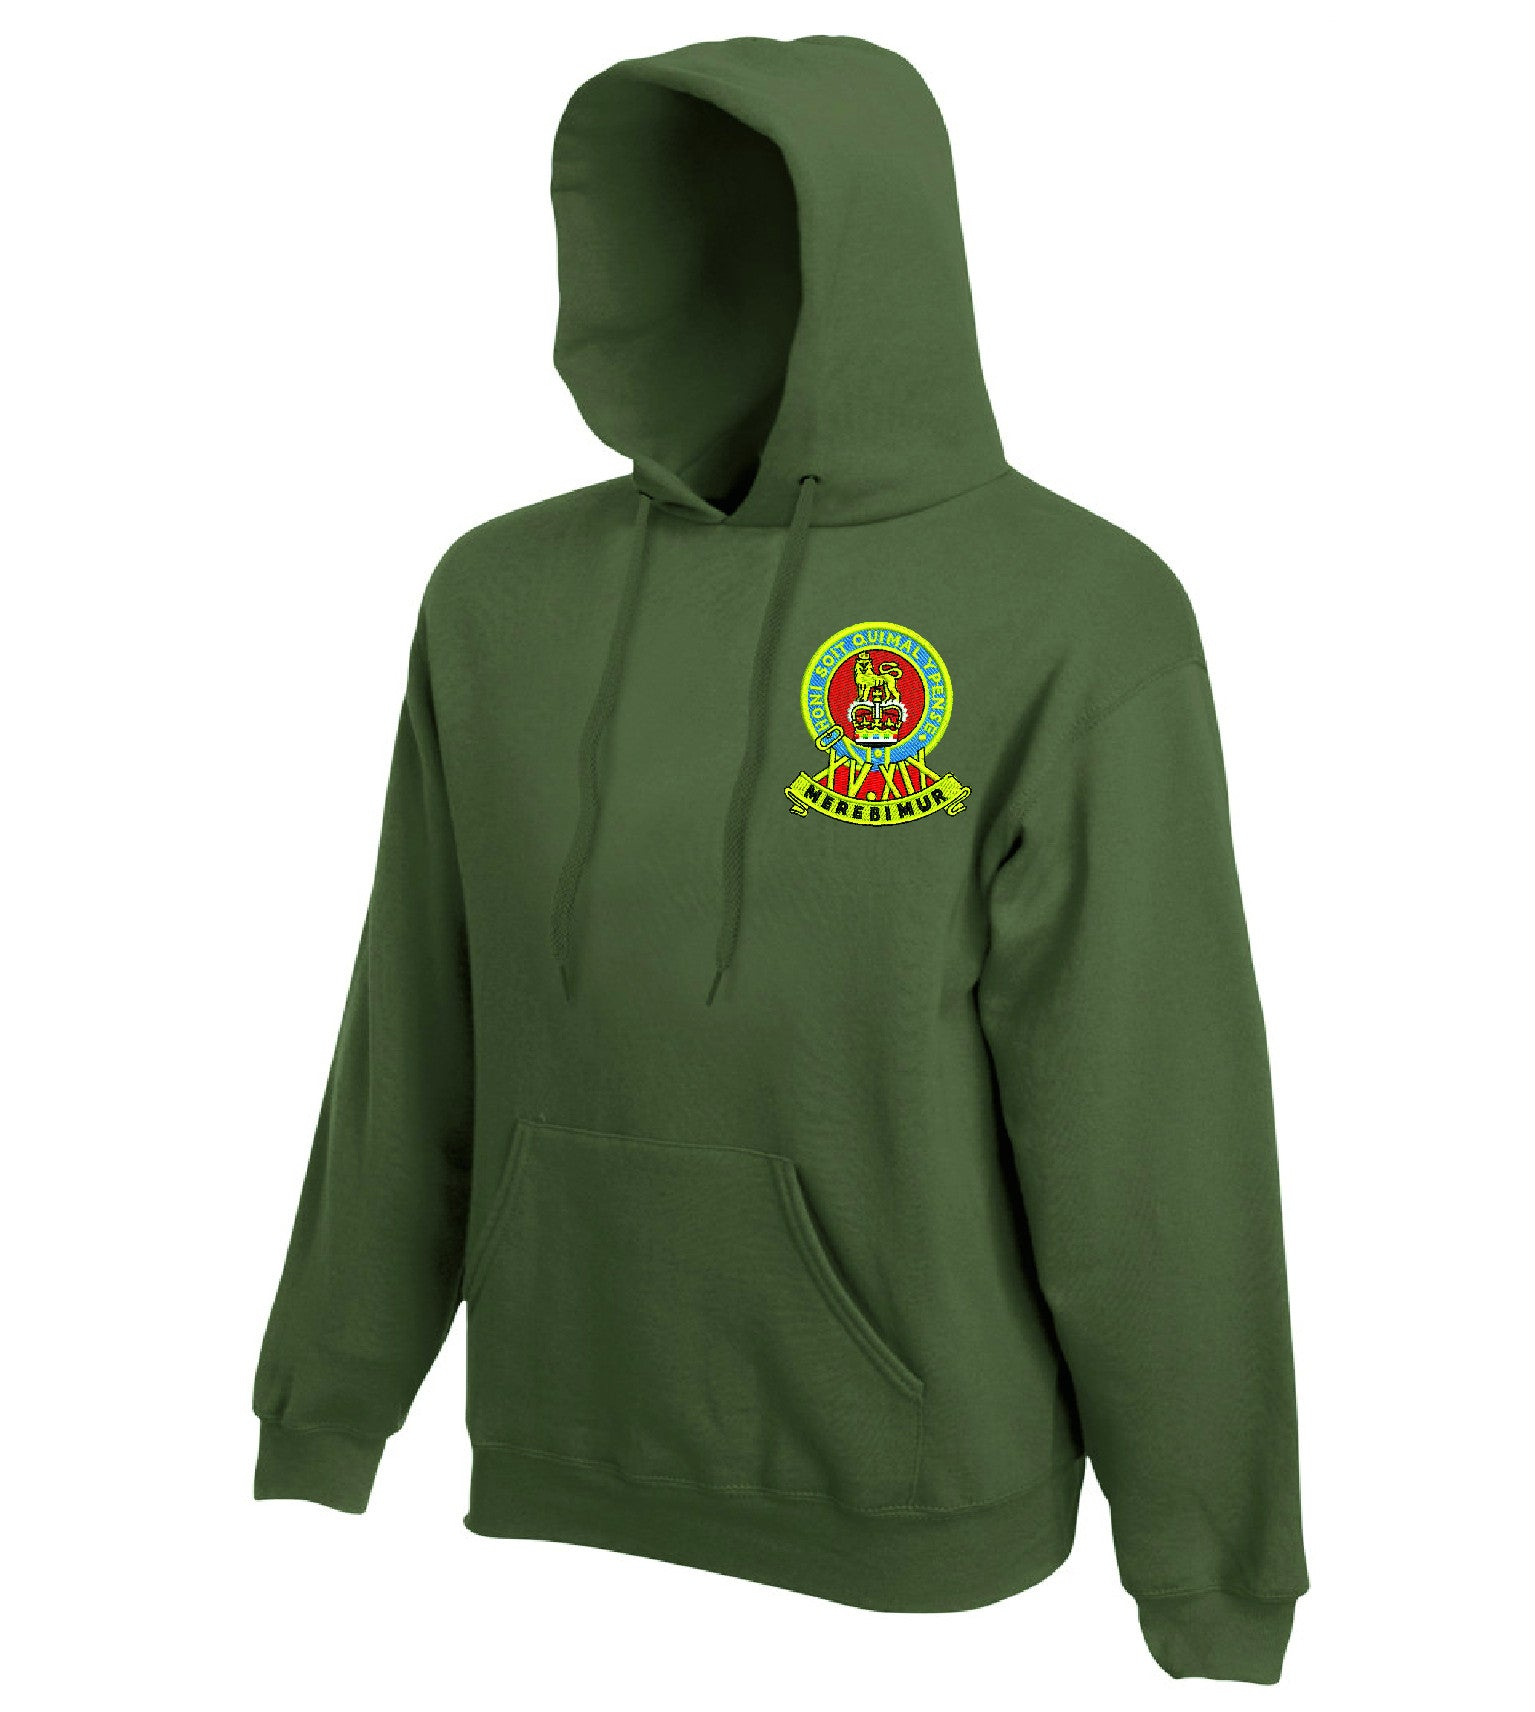 15th/19th Royal Kings Hussars Hoodies